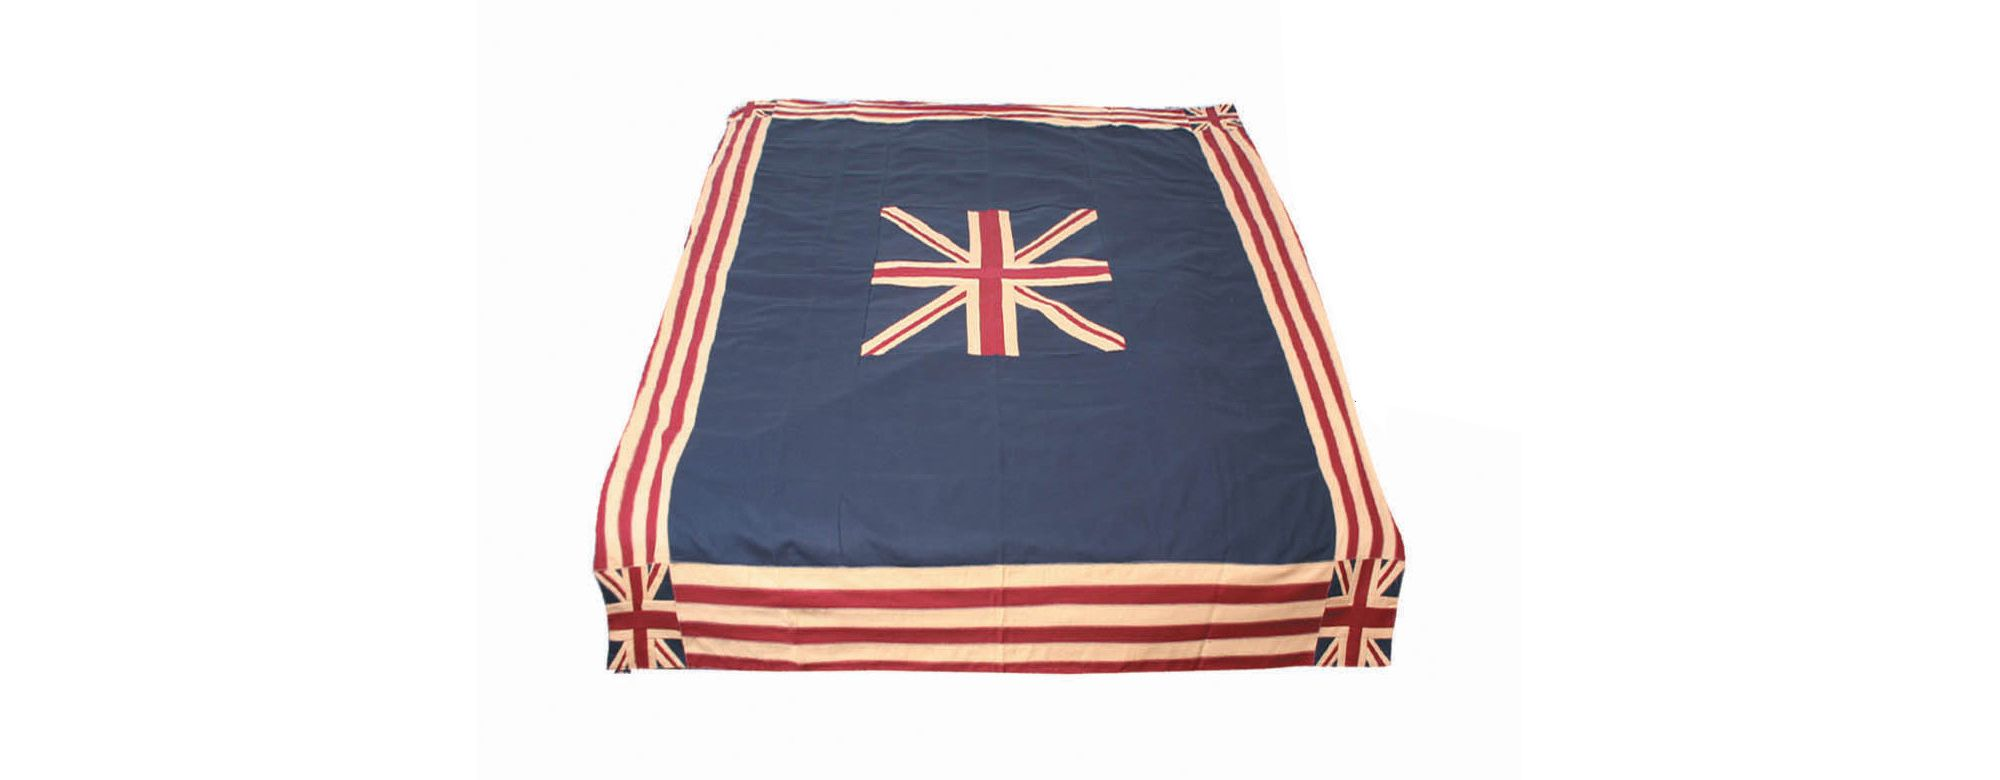 Cloth Table Patriotic Woven table Magic Large tesco Jack  Duck  Union runner